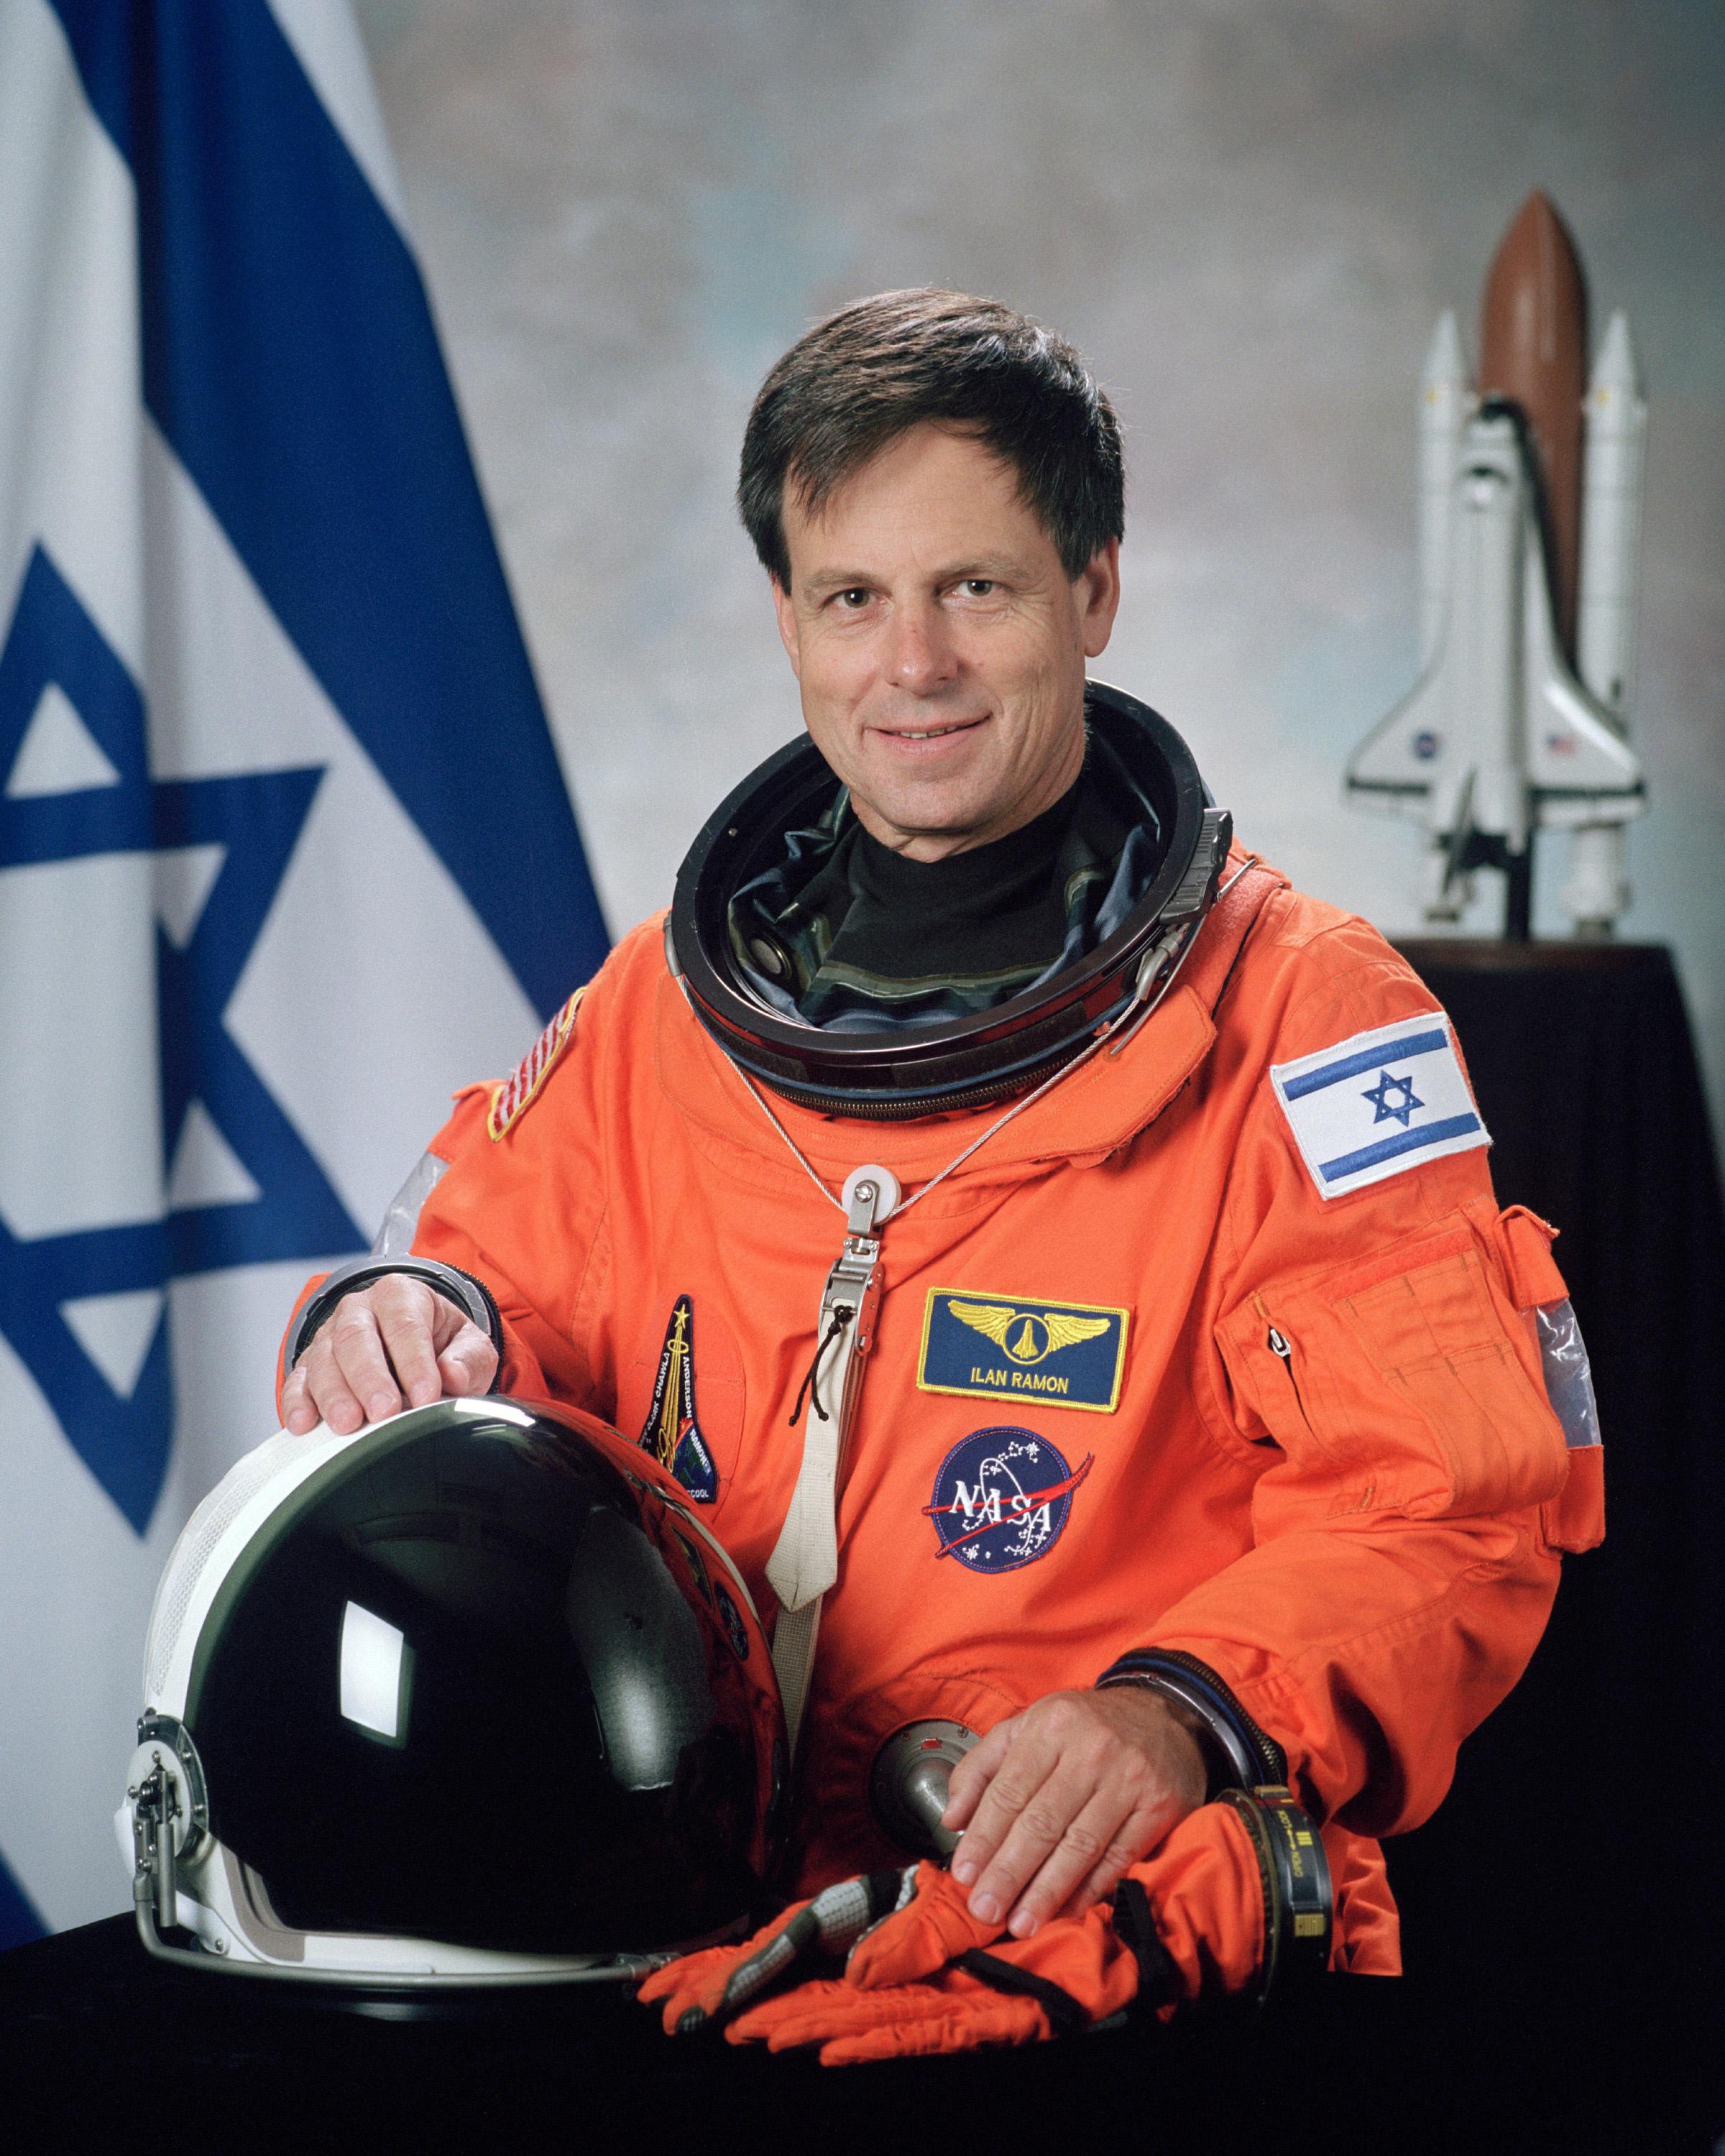 Ilan_Ramon,_NASA_photo_portrait_in_orange_suit